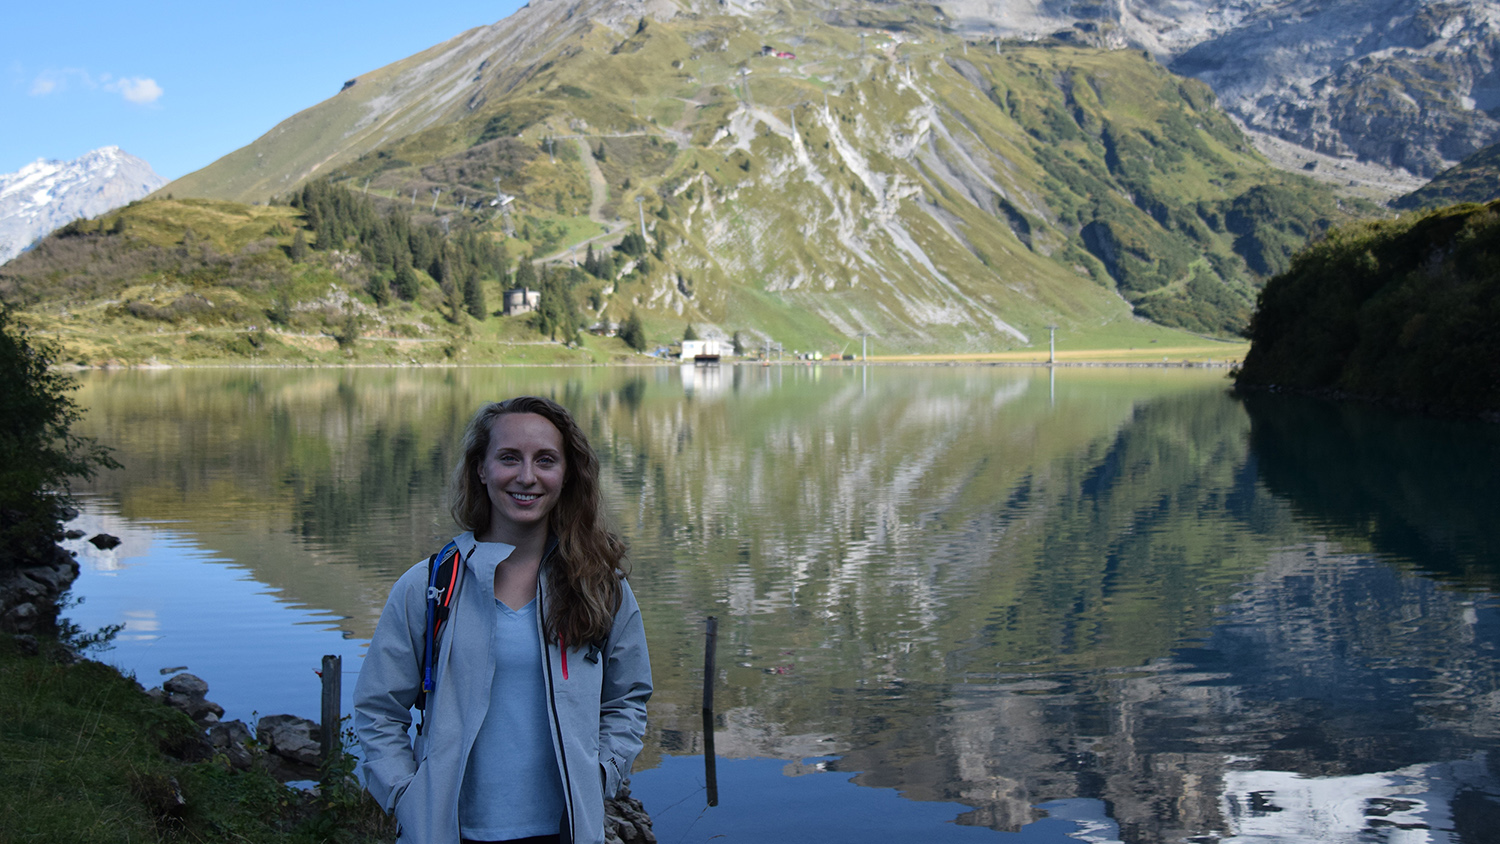 Alumna Victoria Scholl in front of a lake and mountain in Switzerland